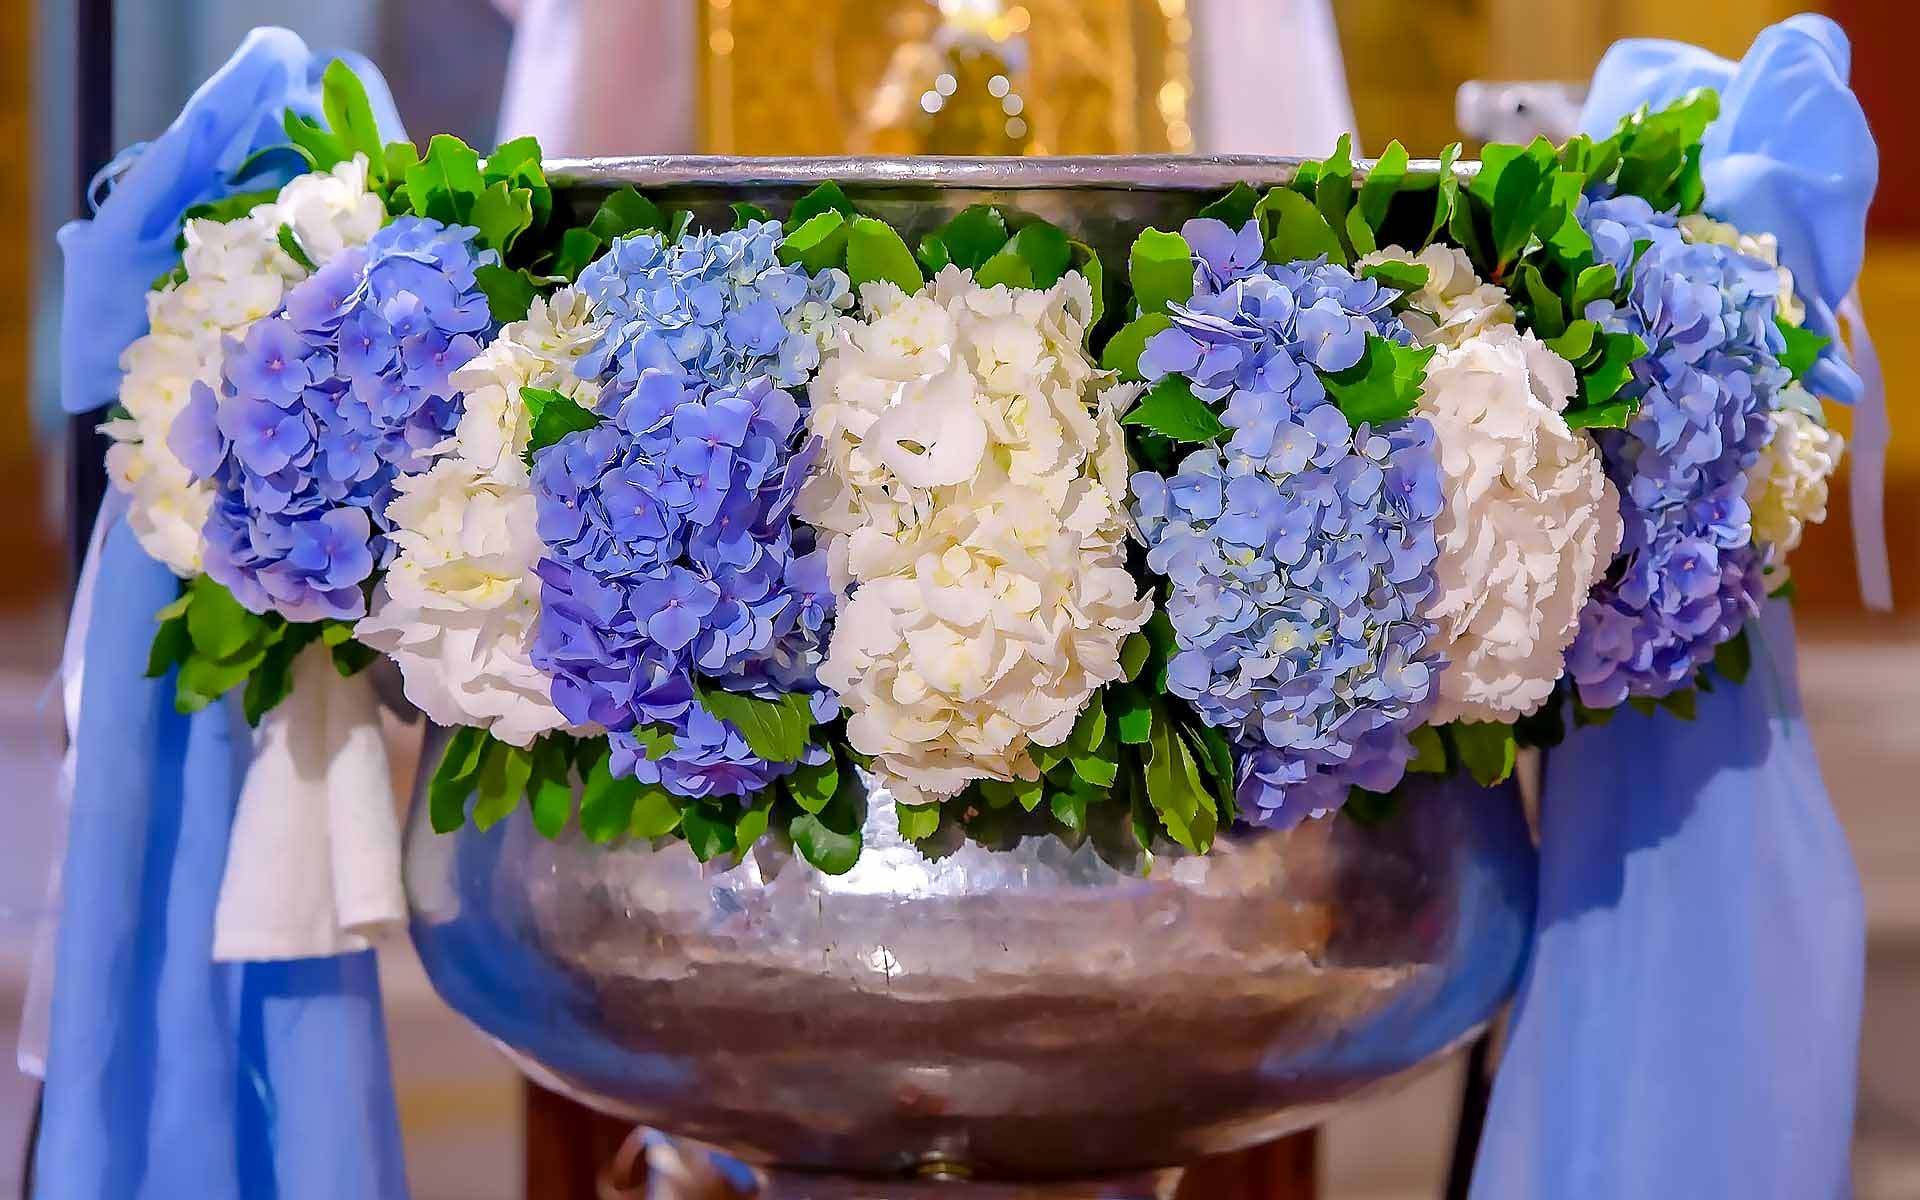 The-Silver-Baptismal-Basin-Accentuates-The-Beautiful-Blue-And-White-Hydrangeas